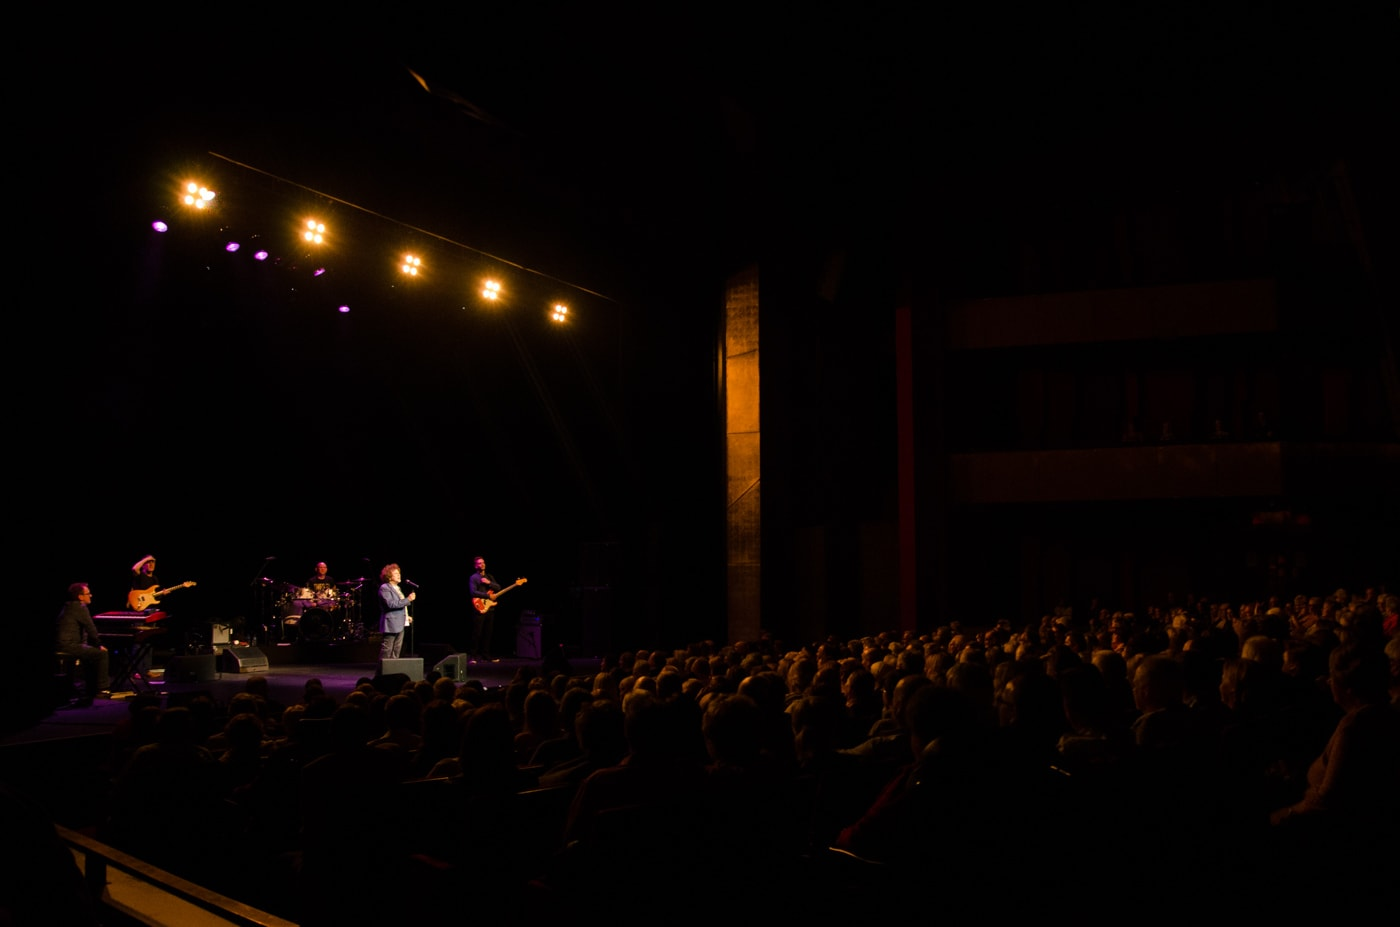 Leo Sayer at Bord Gais Energy Theatre by Sean Smyth (16-10-15) (60 of 129)